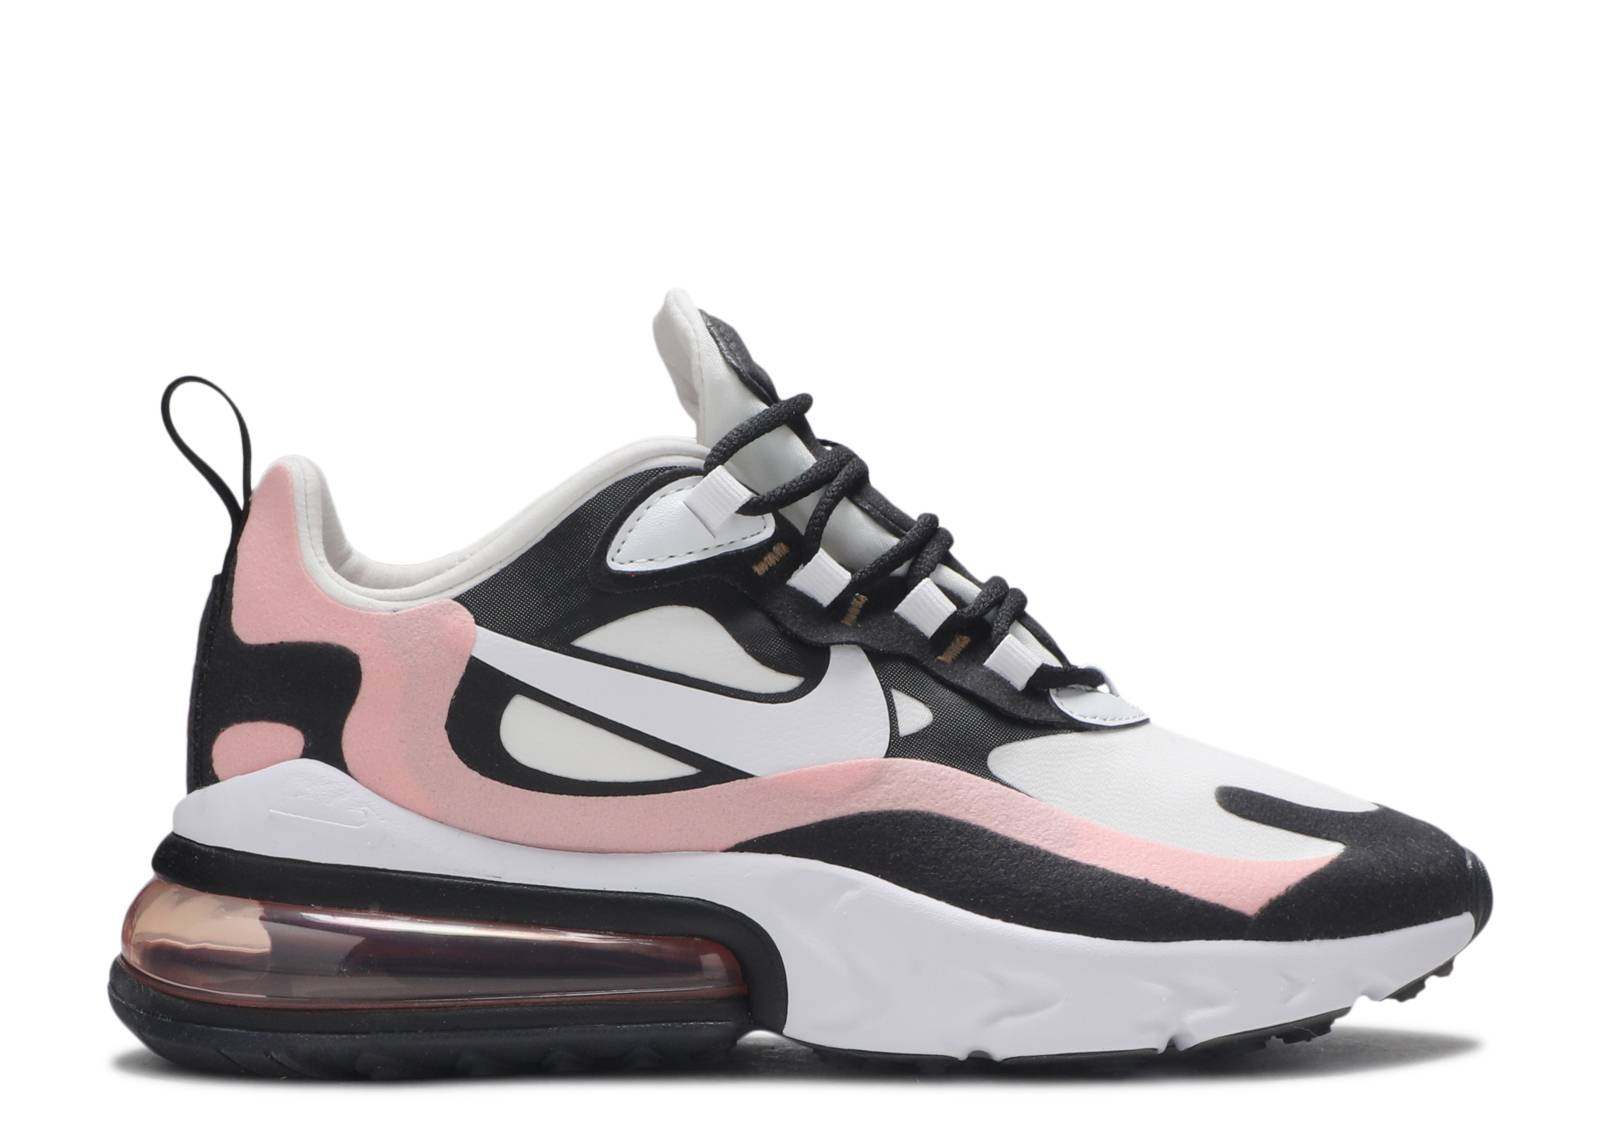 Wmns Air Max 270 React Coral Black Nike At6174 005 Black